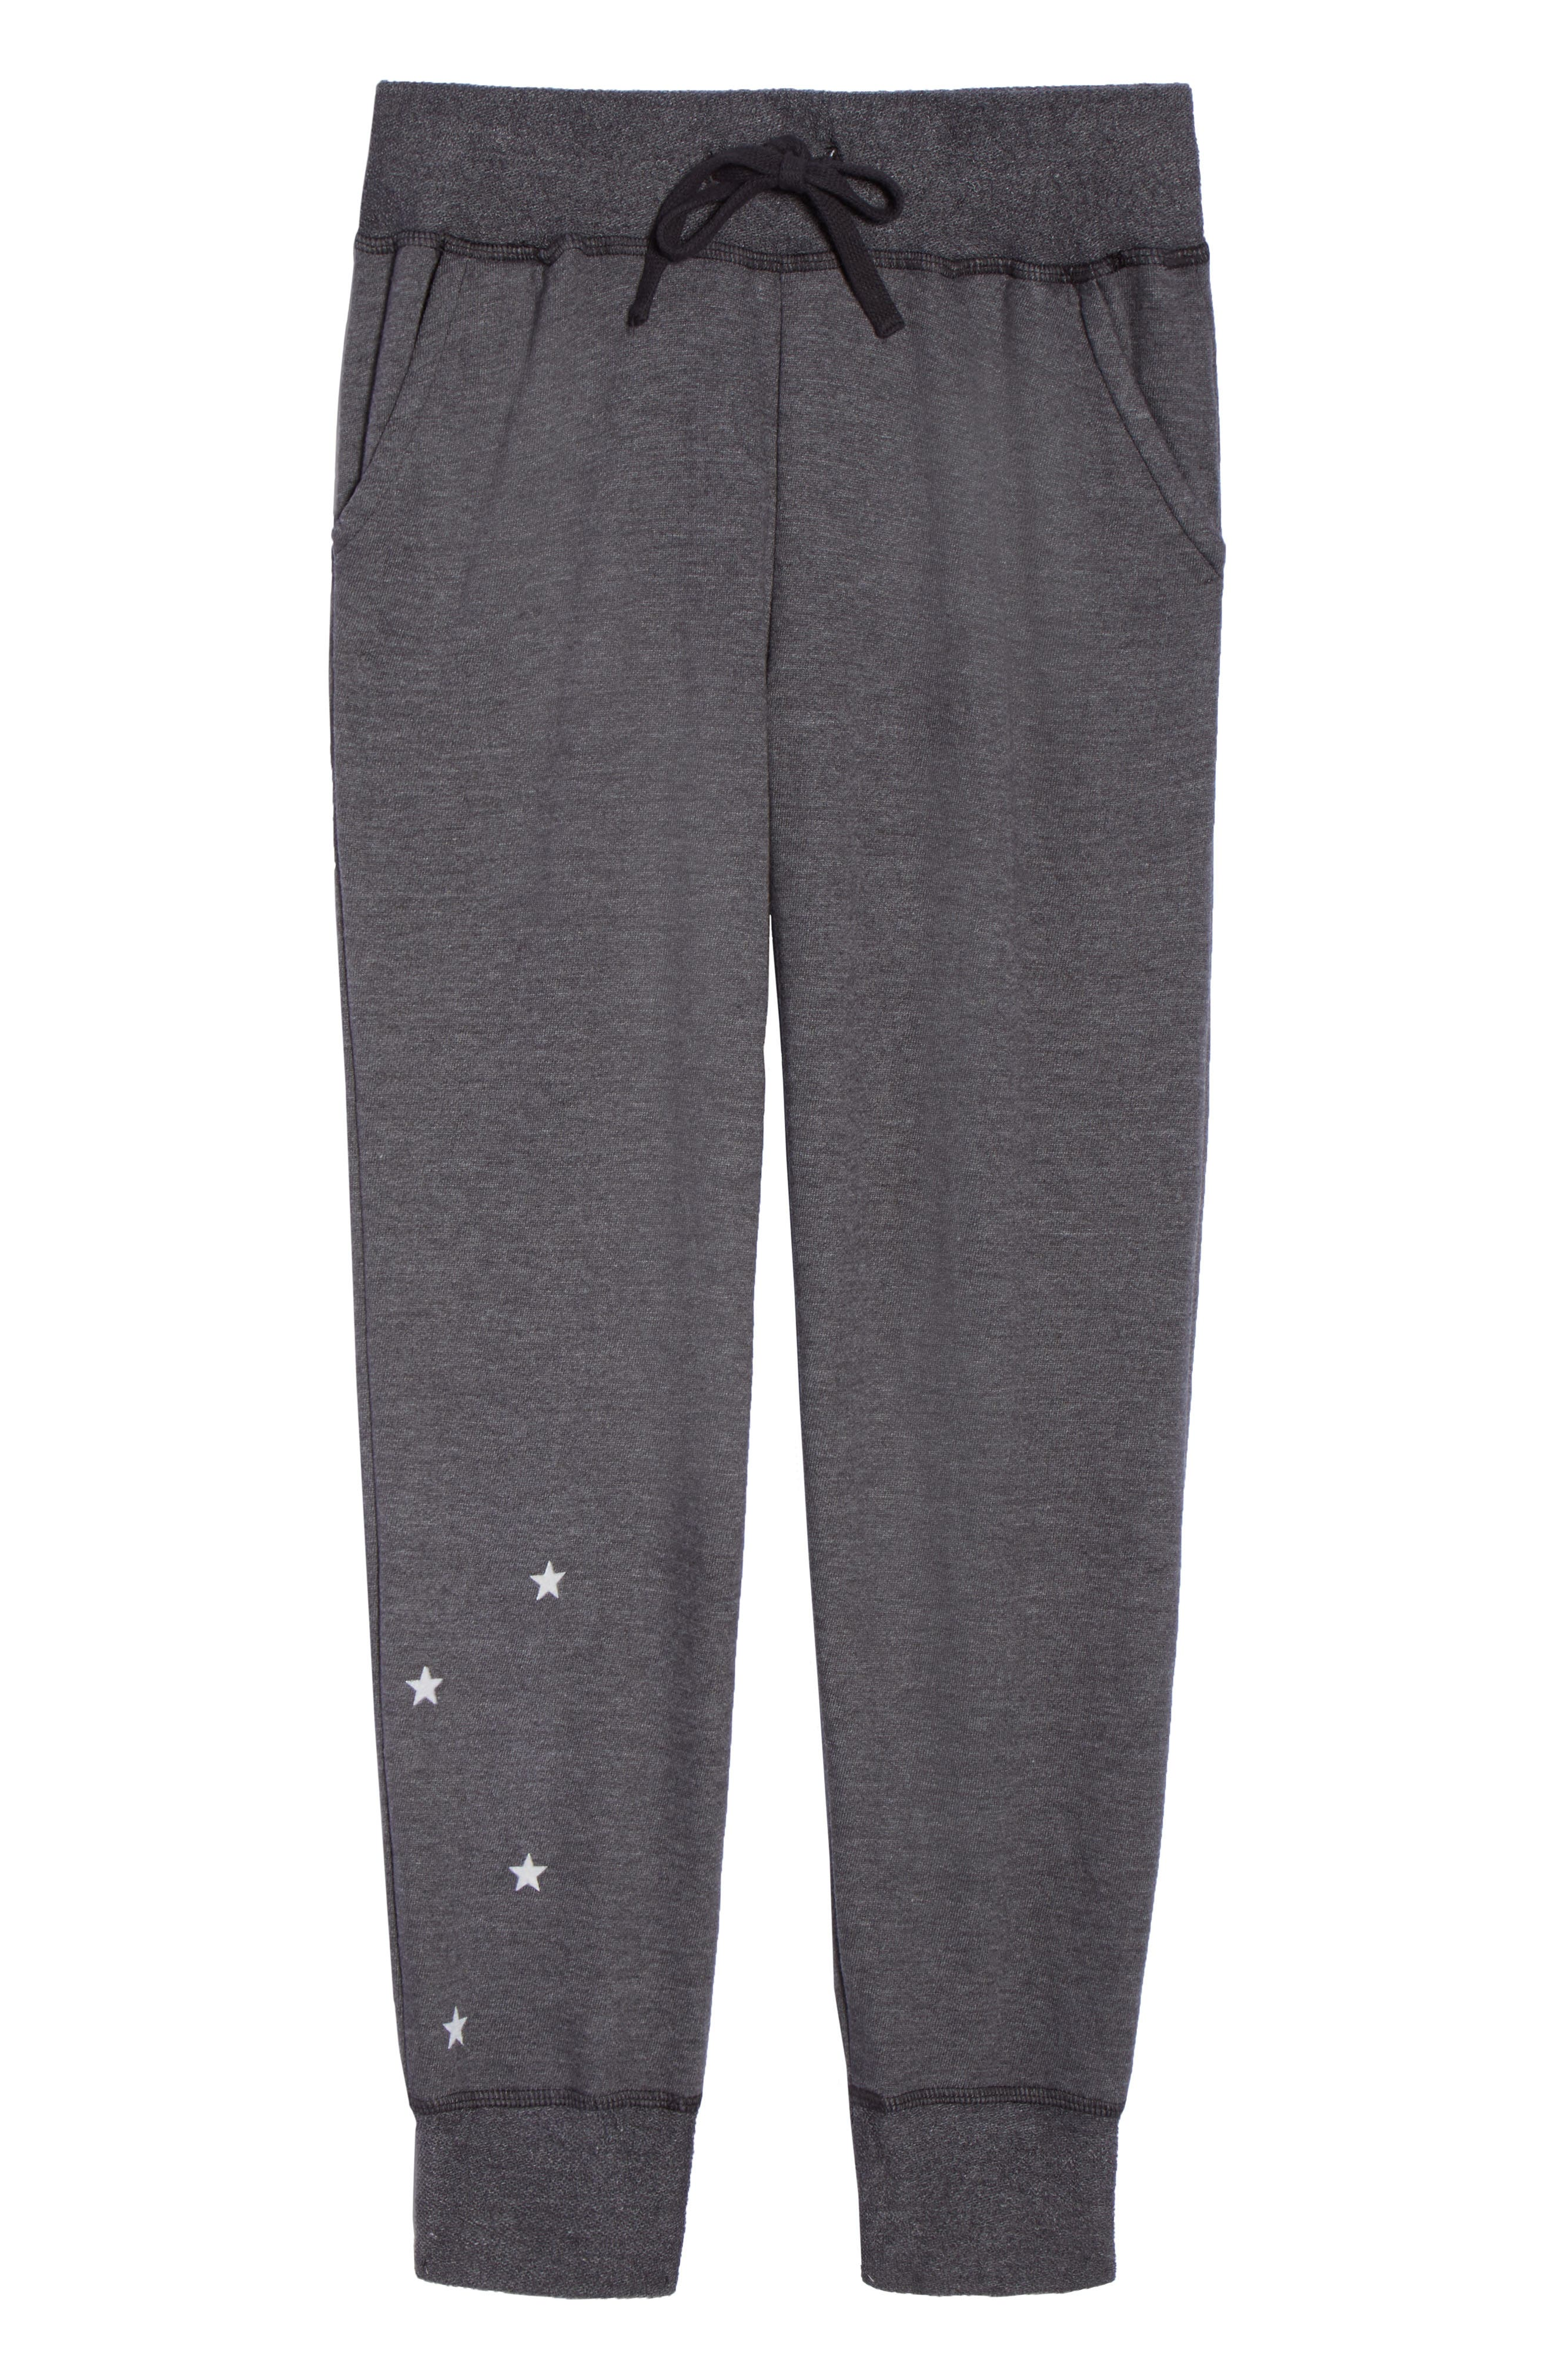 Stars Crop Lounge Pants,                             Alternate thumbnail 6, color,                             001